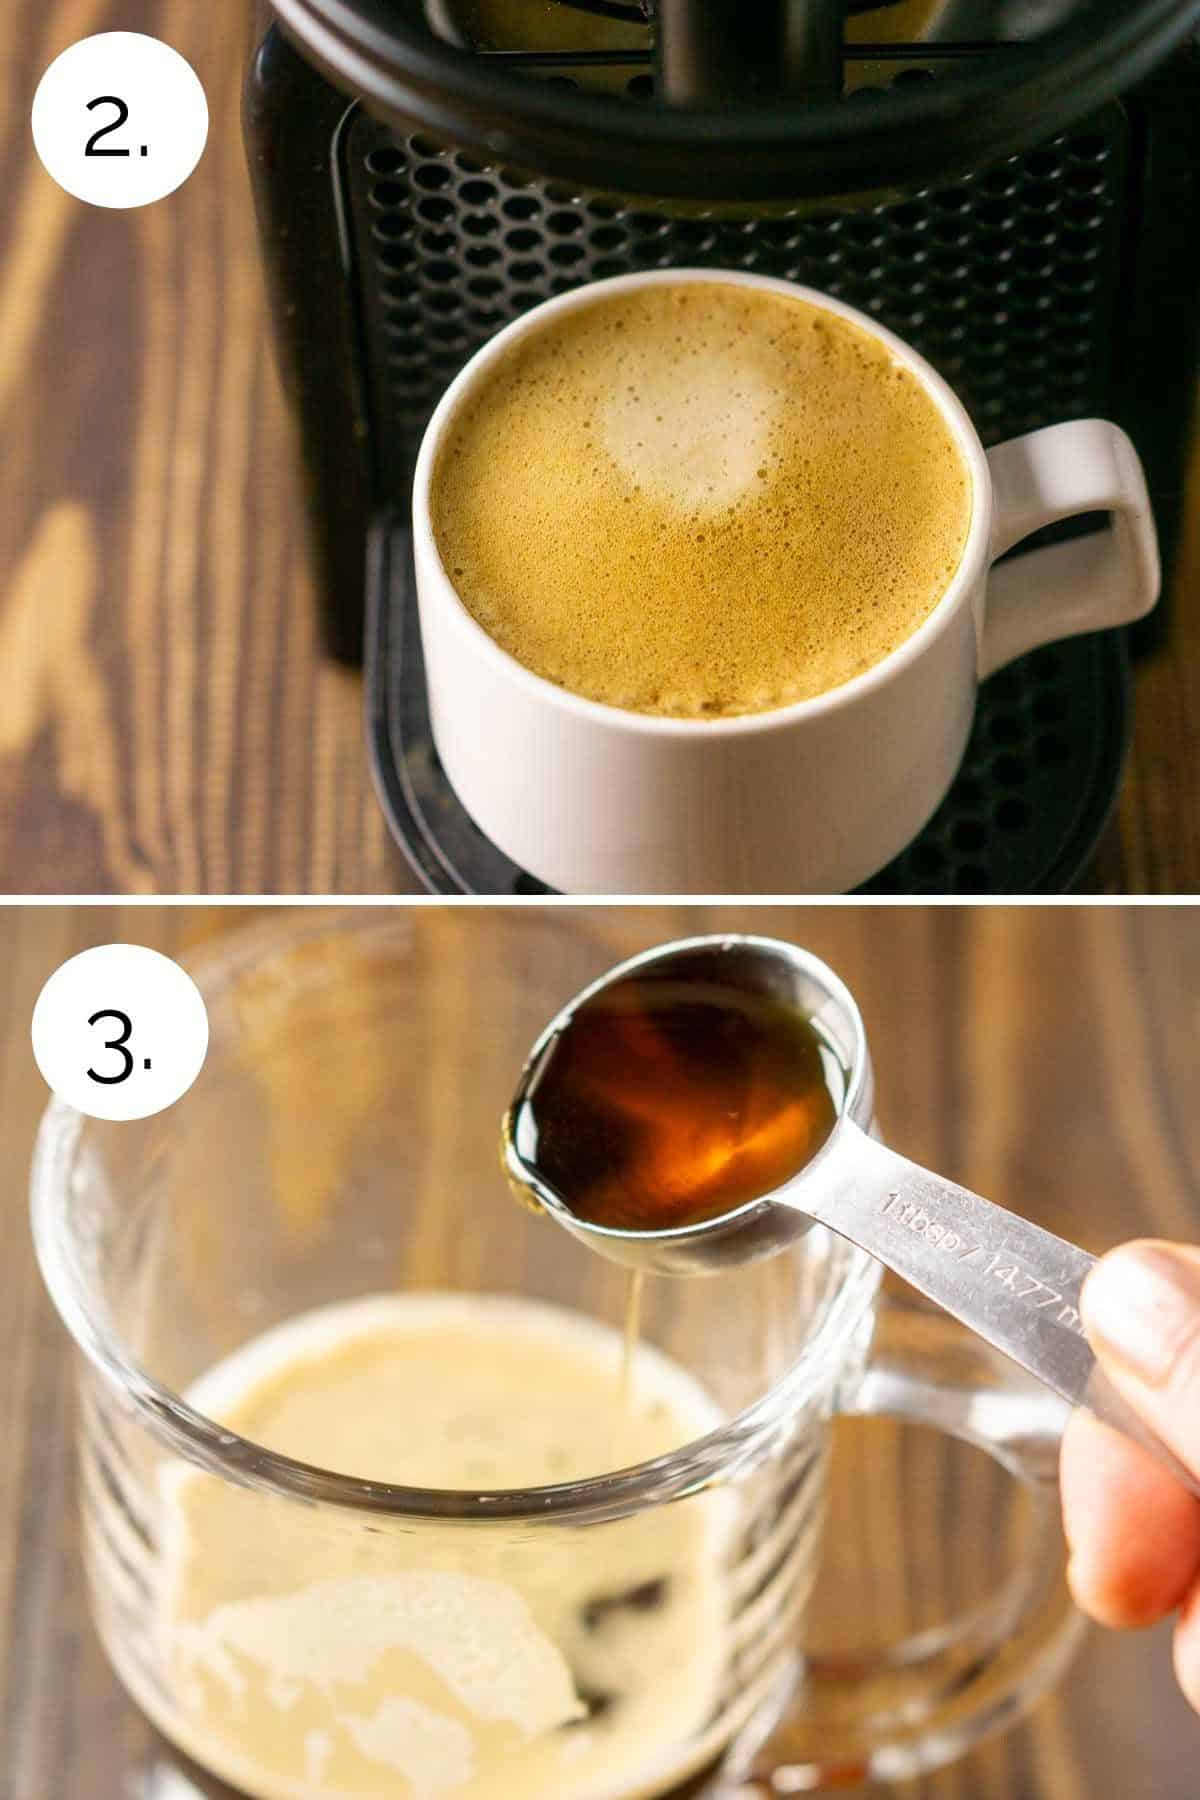 A collage showing the process of making the espresso and mixing it with the maple syrup.